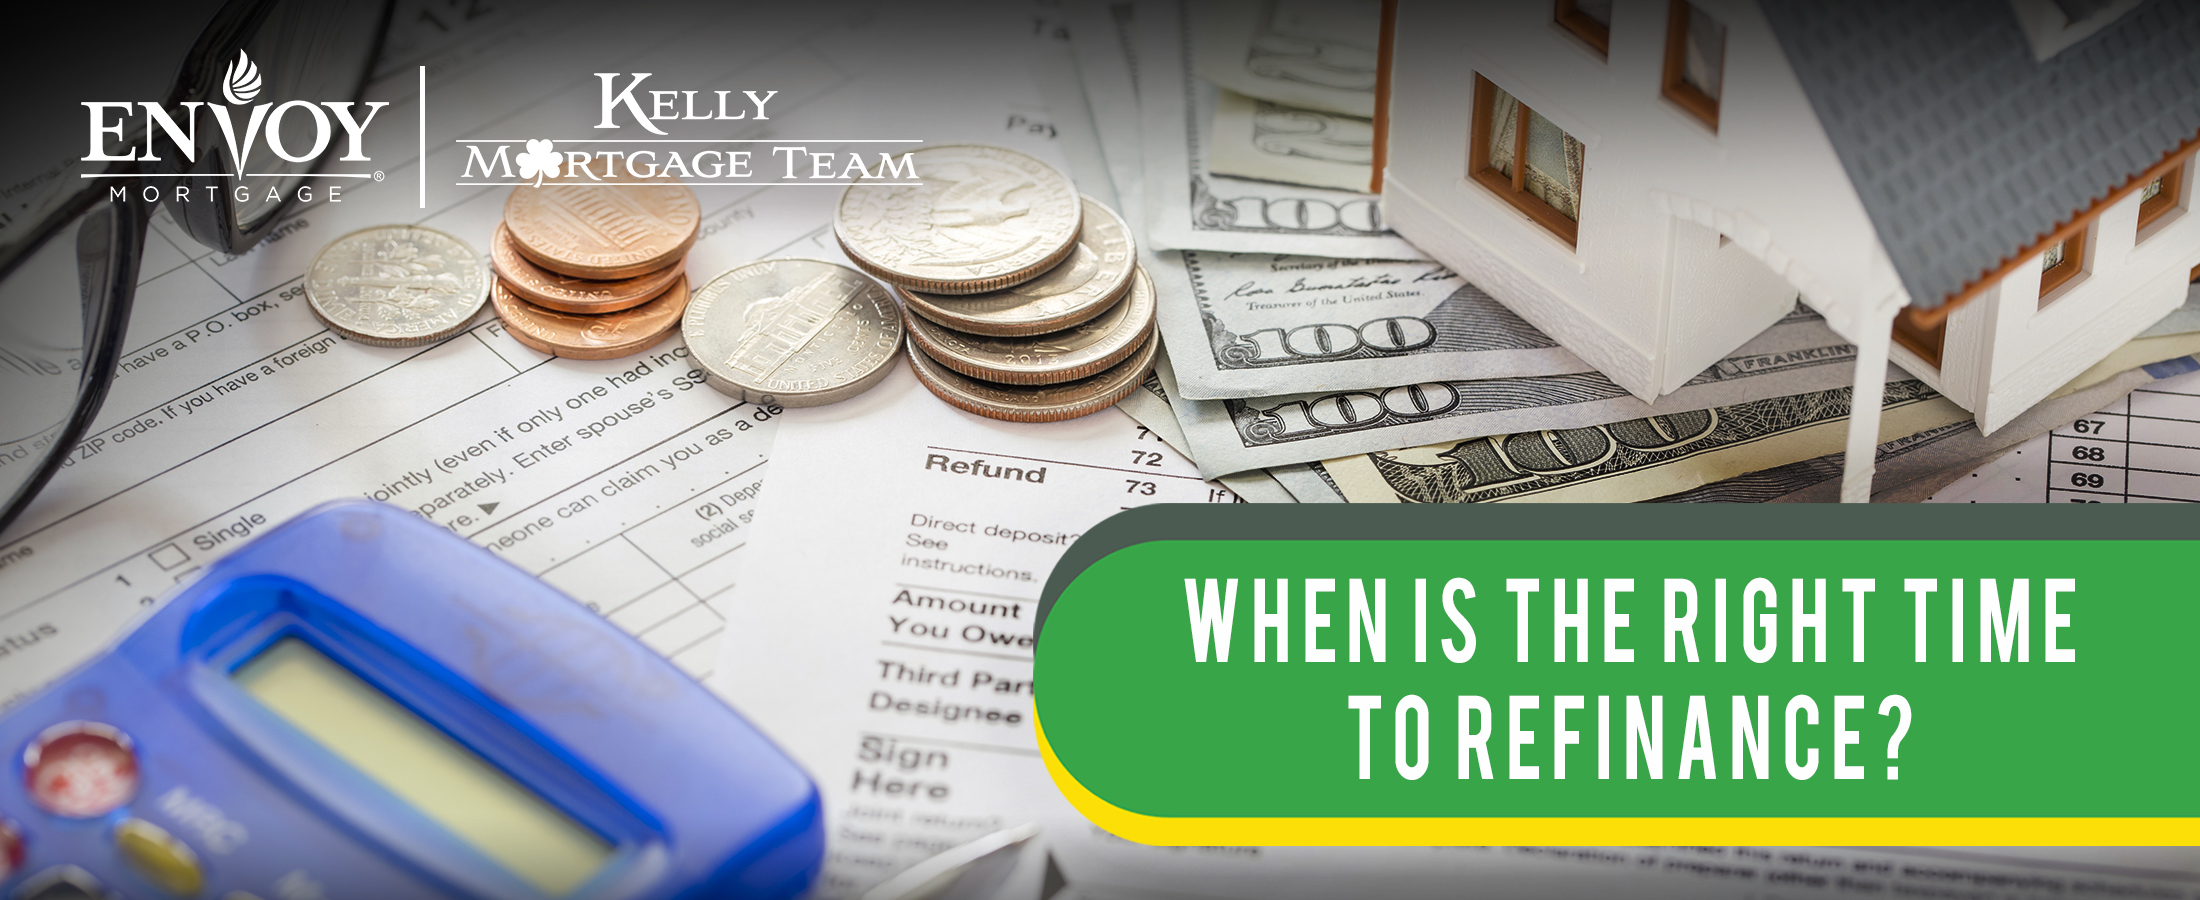 When is the Right Time to Refinance?